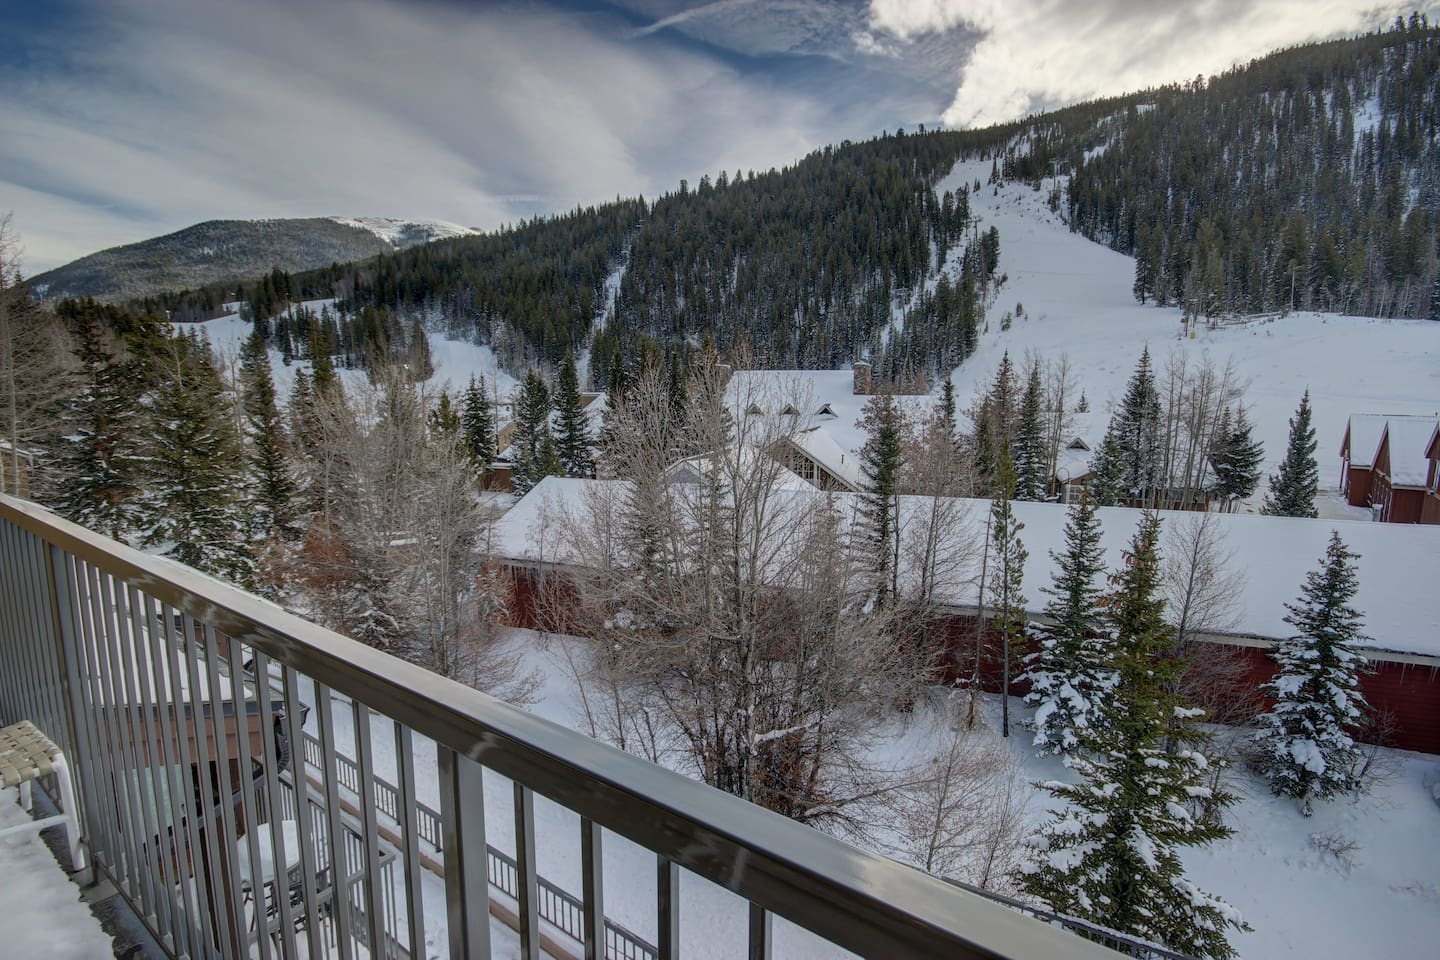 Enjoy watching the skiers from the balcony